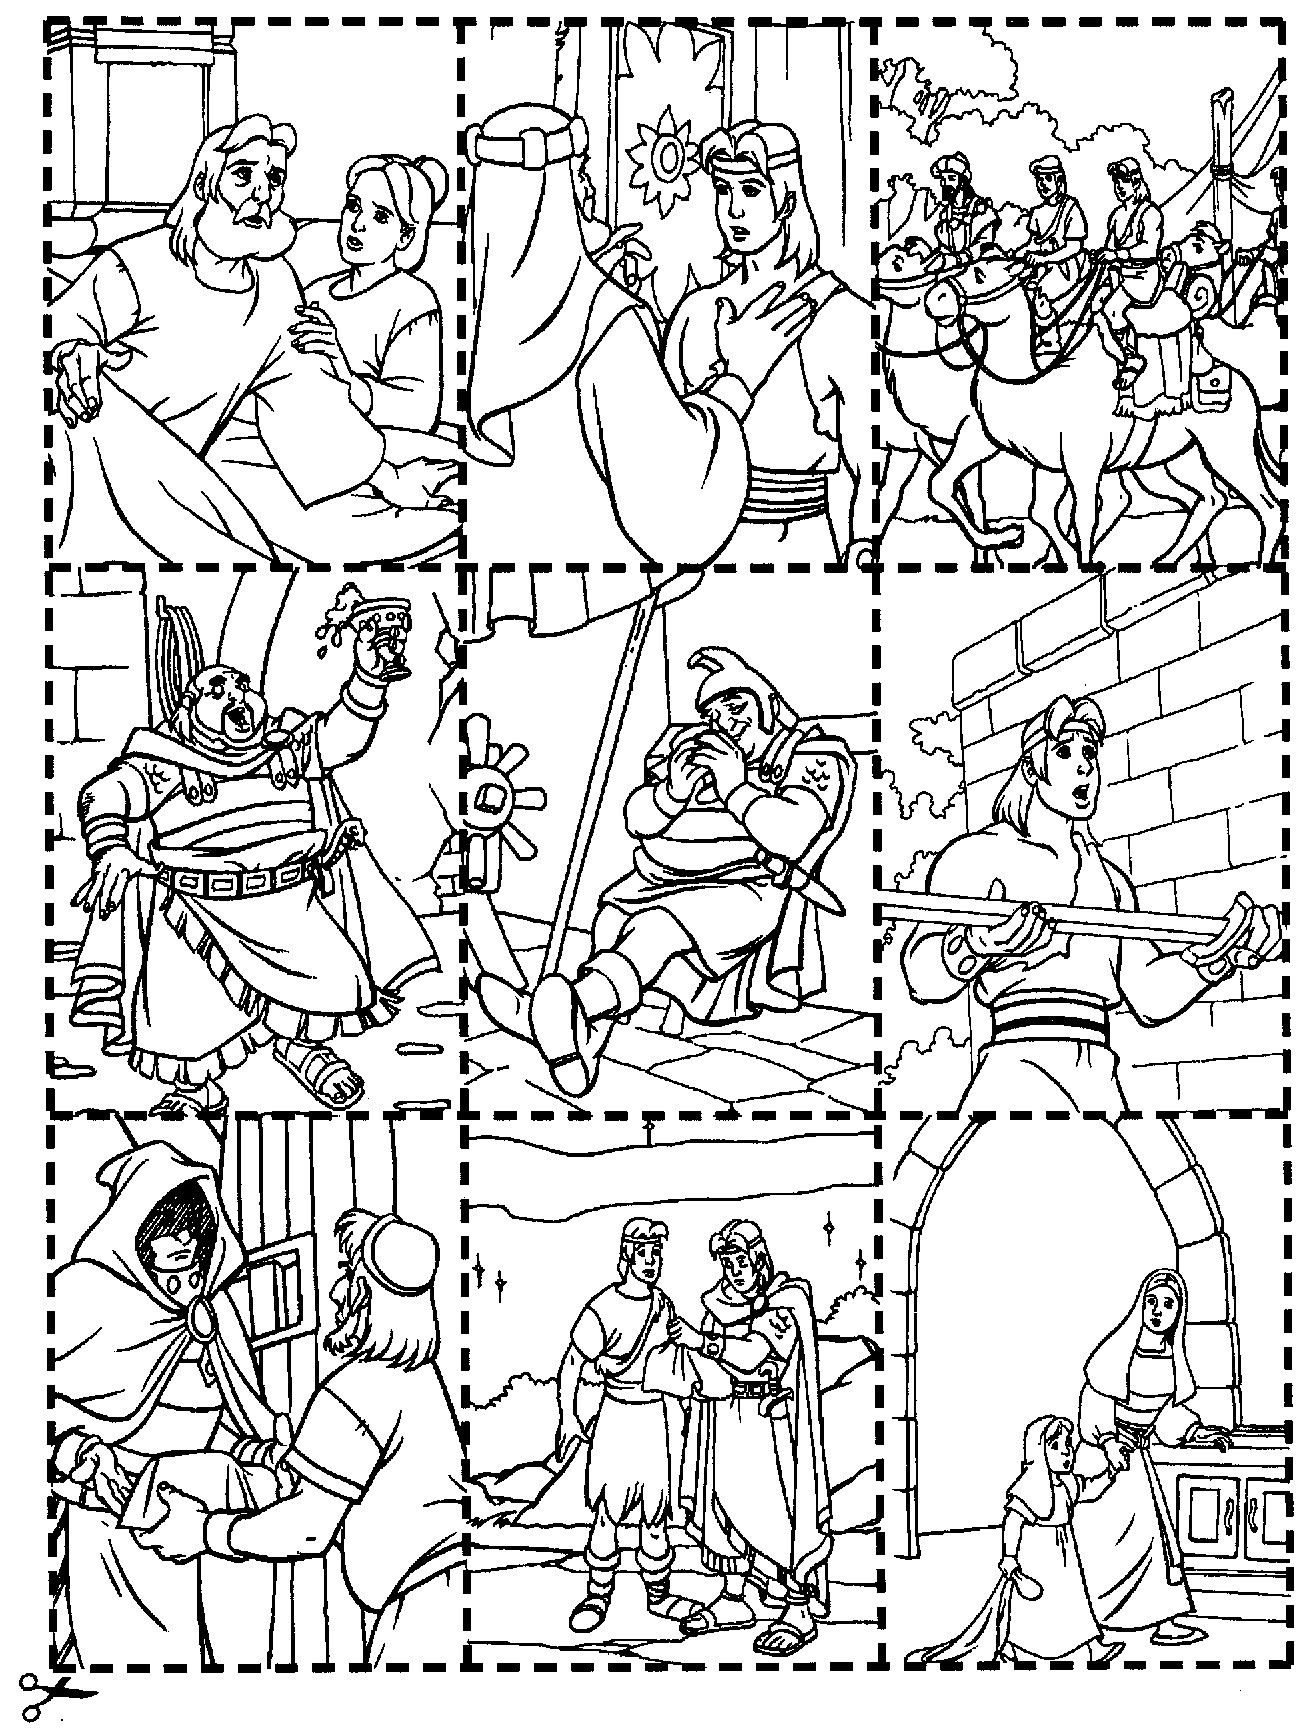 lds coloring pages primarily inclined coloring pages from ldsorg lds coloring pages